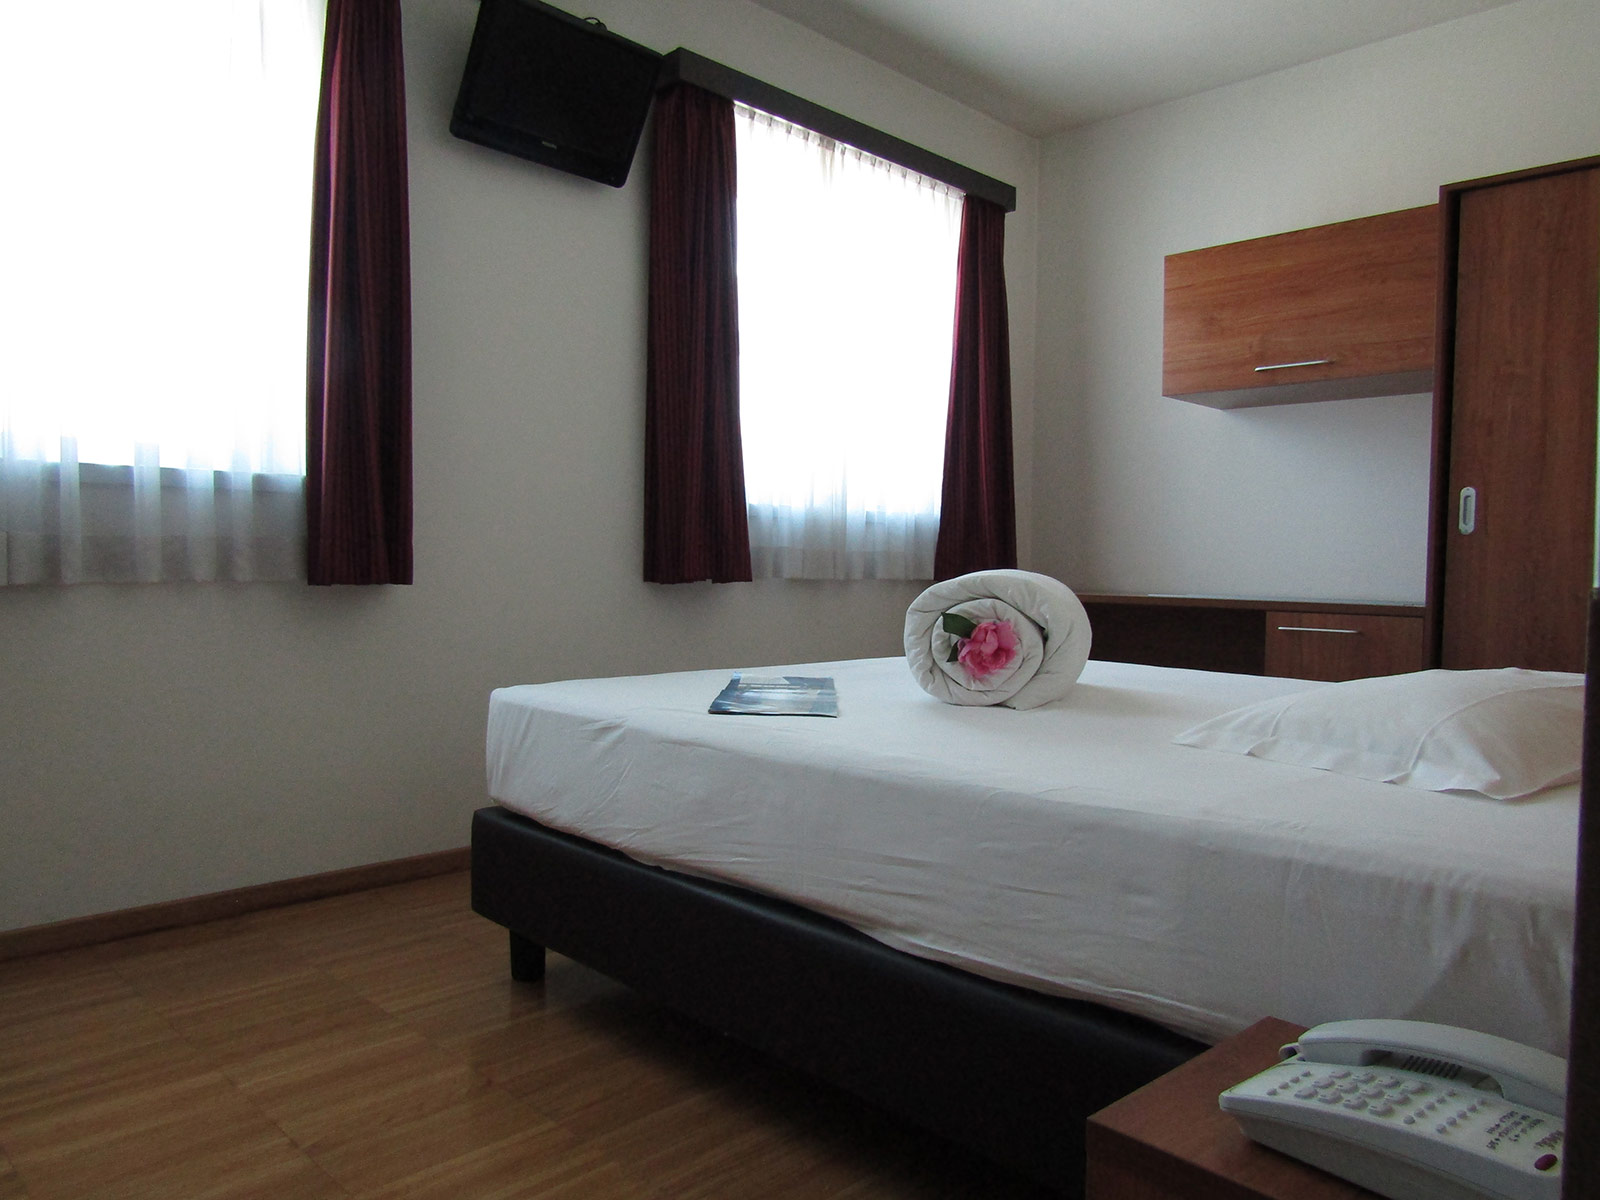 Hotel Garni Al Marinaio - Regular Room